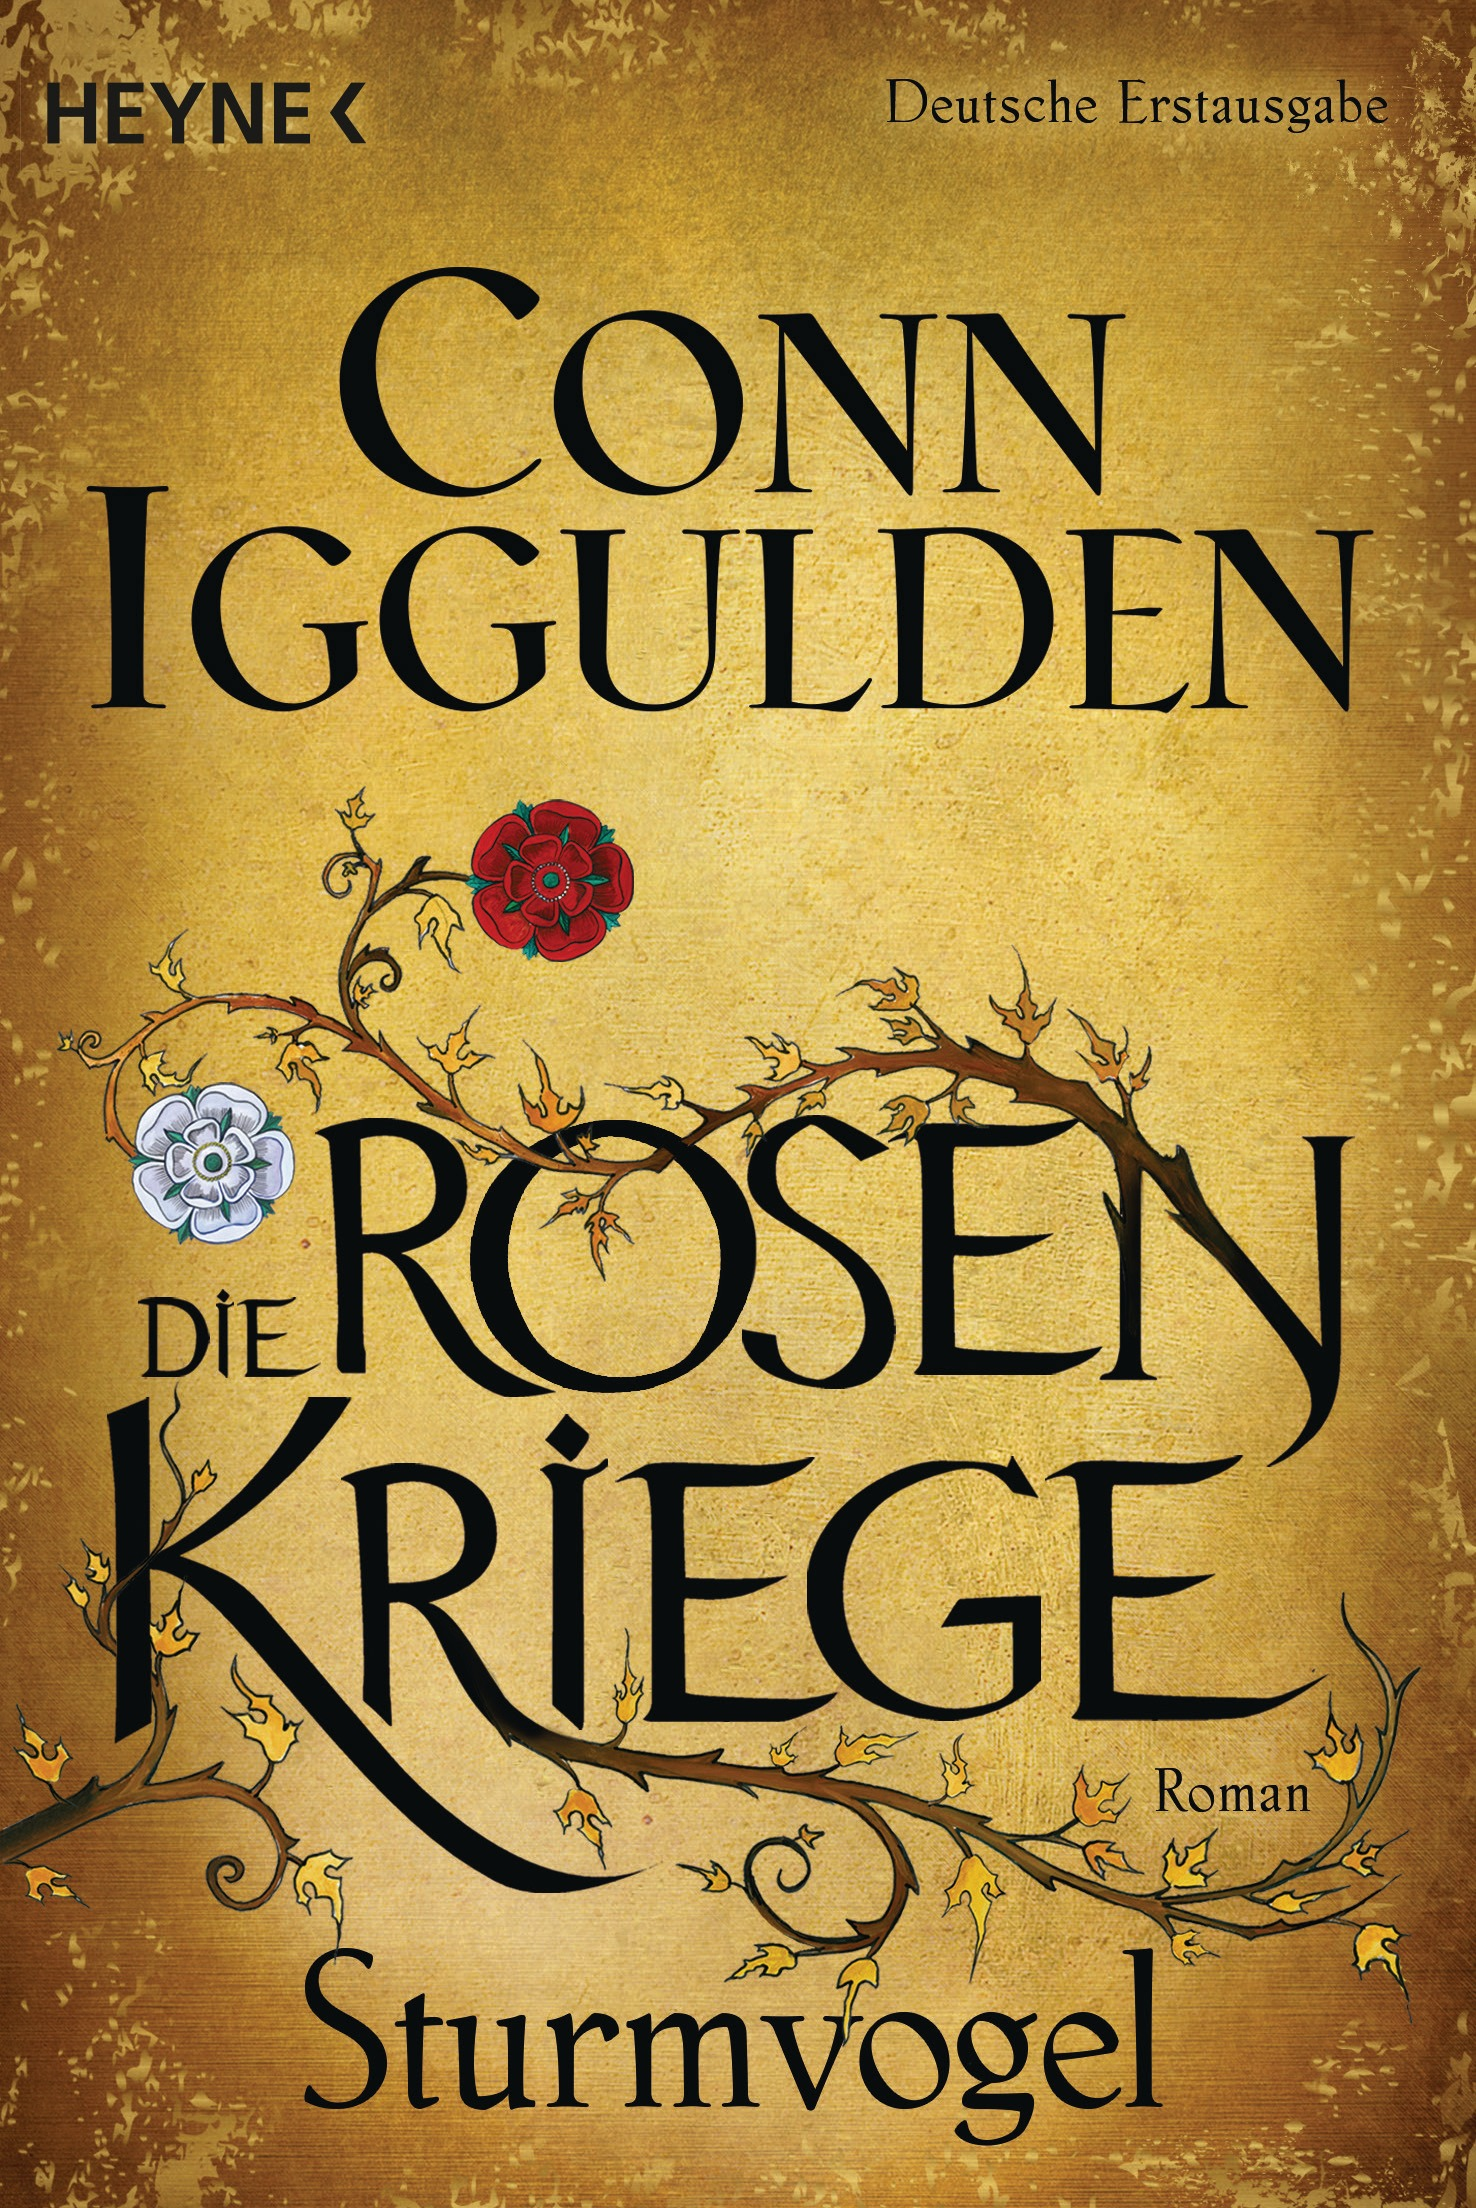 Die Rosenkriege: Band 1 - Sturmvogel - Conn Igg...